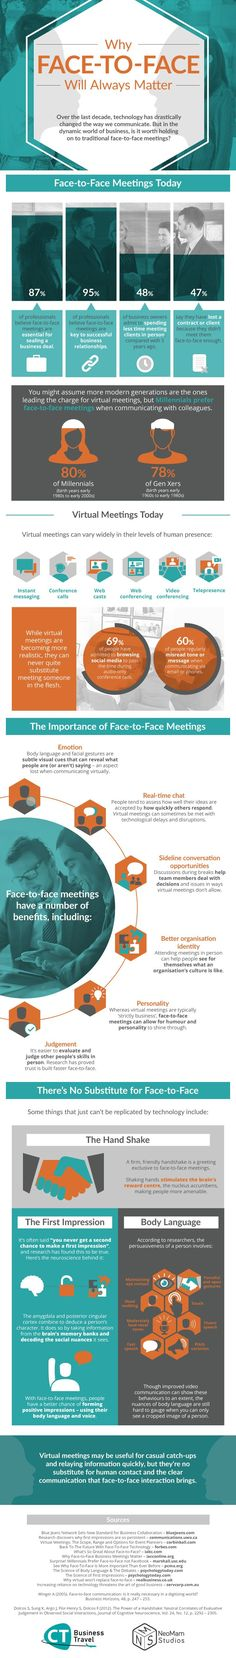 Why Face-to-Face Will Always Matter #infographic #Meetings #business